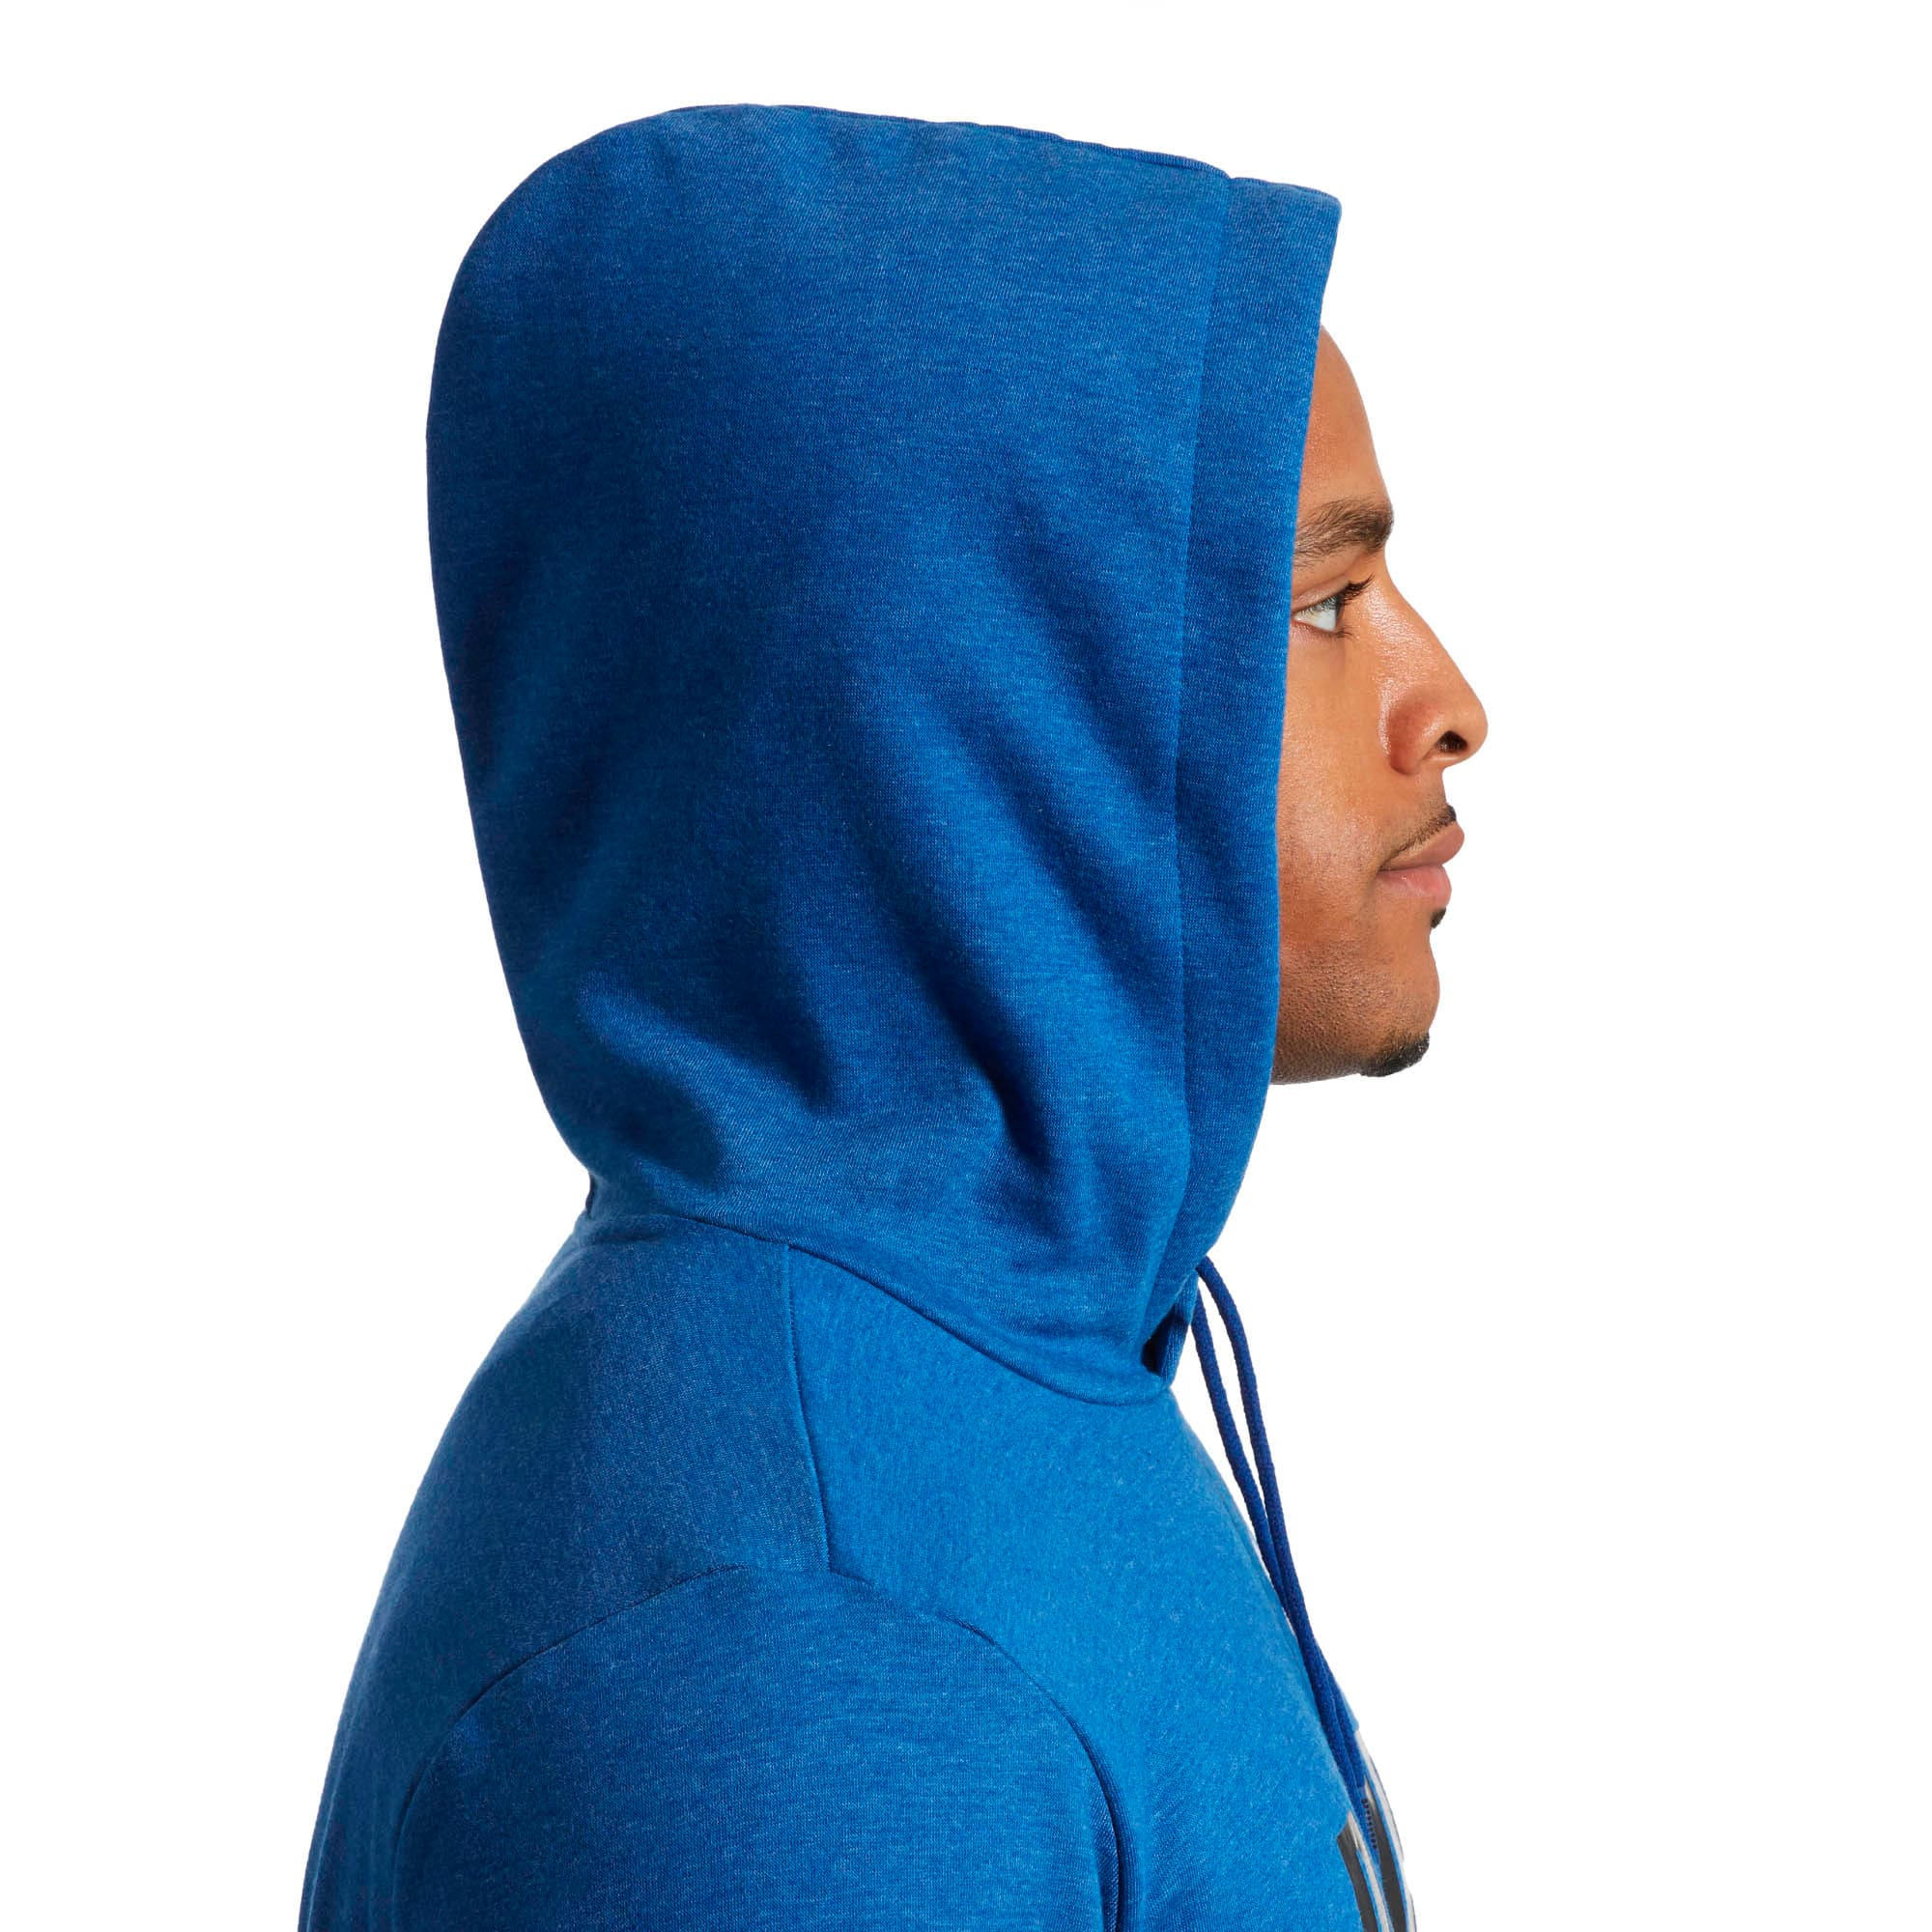 Thumbnail 3 of Essential Fleece Hoodie, Sodalite Blue Heather, medium